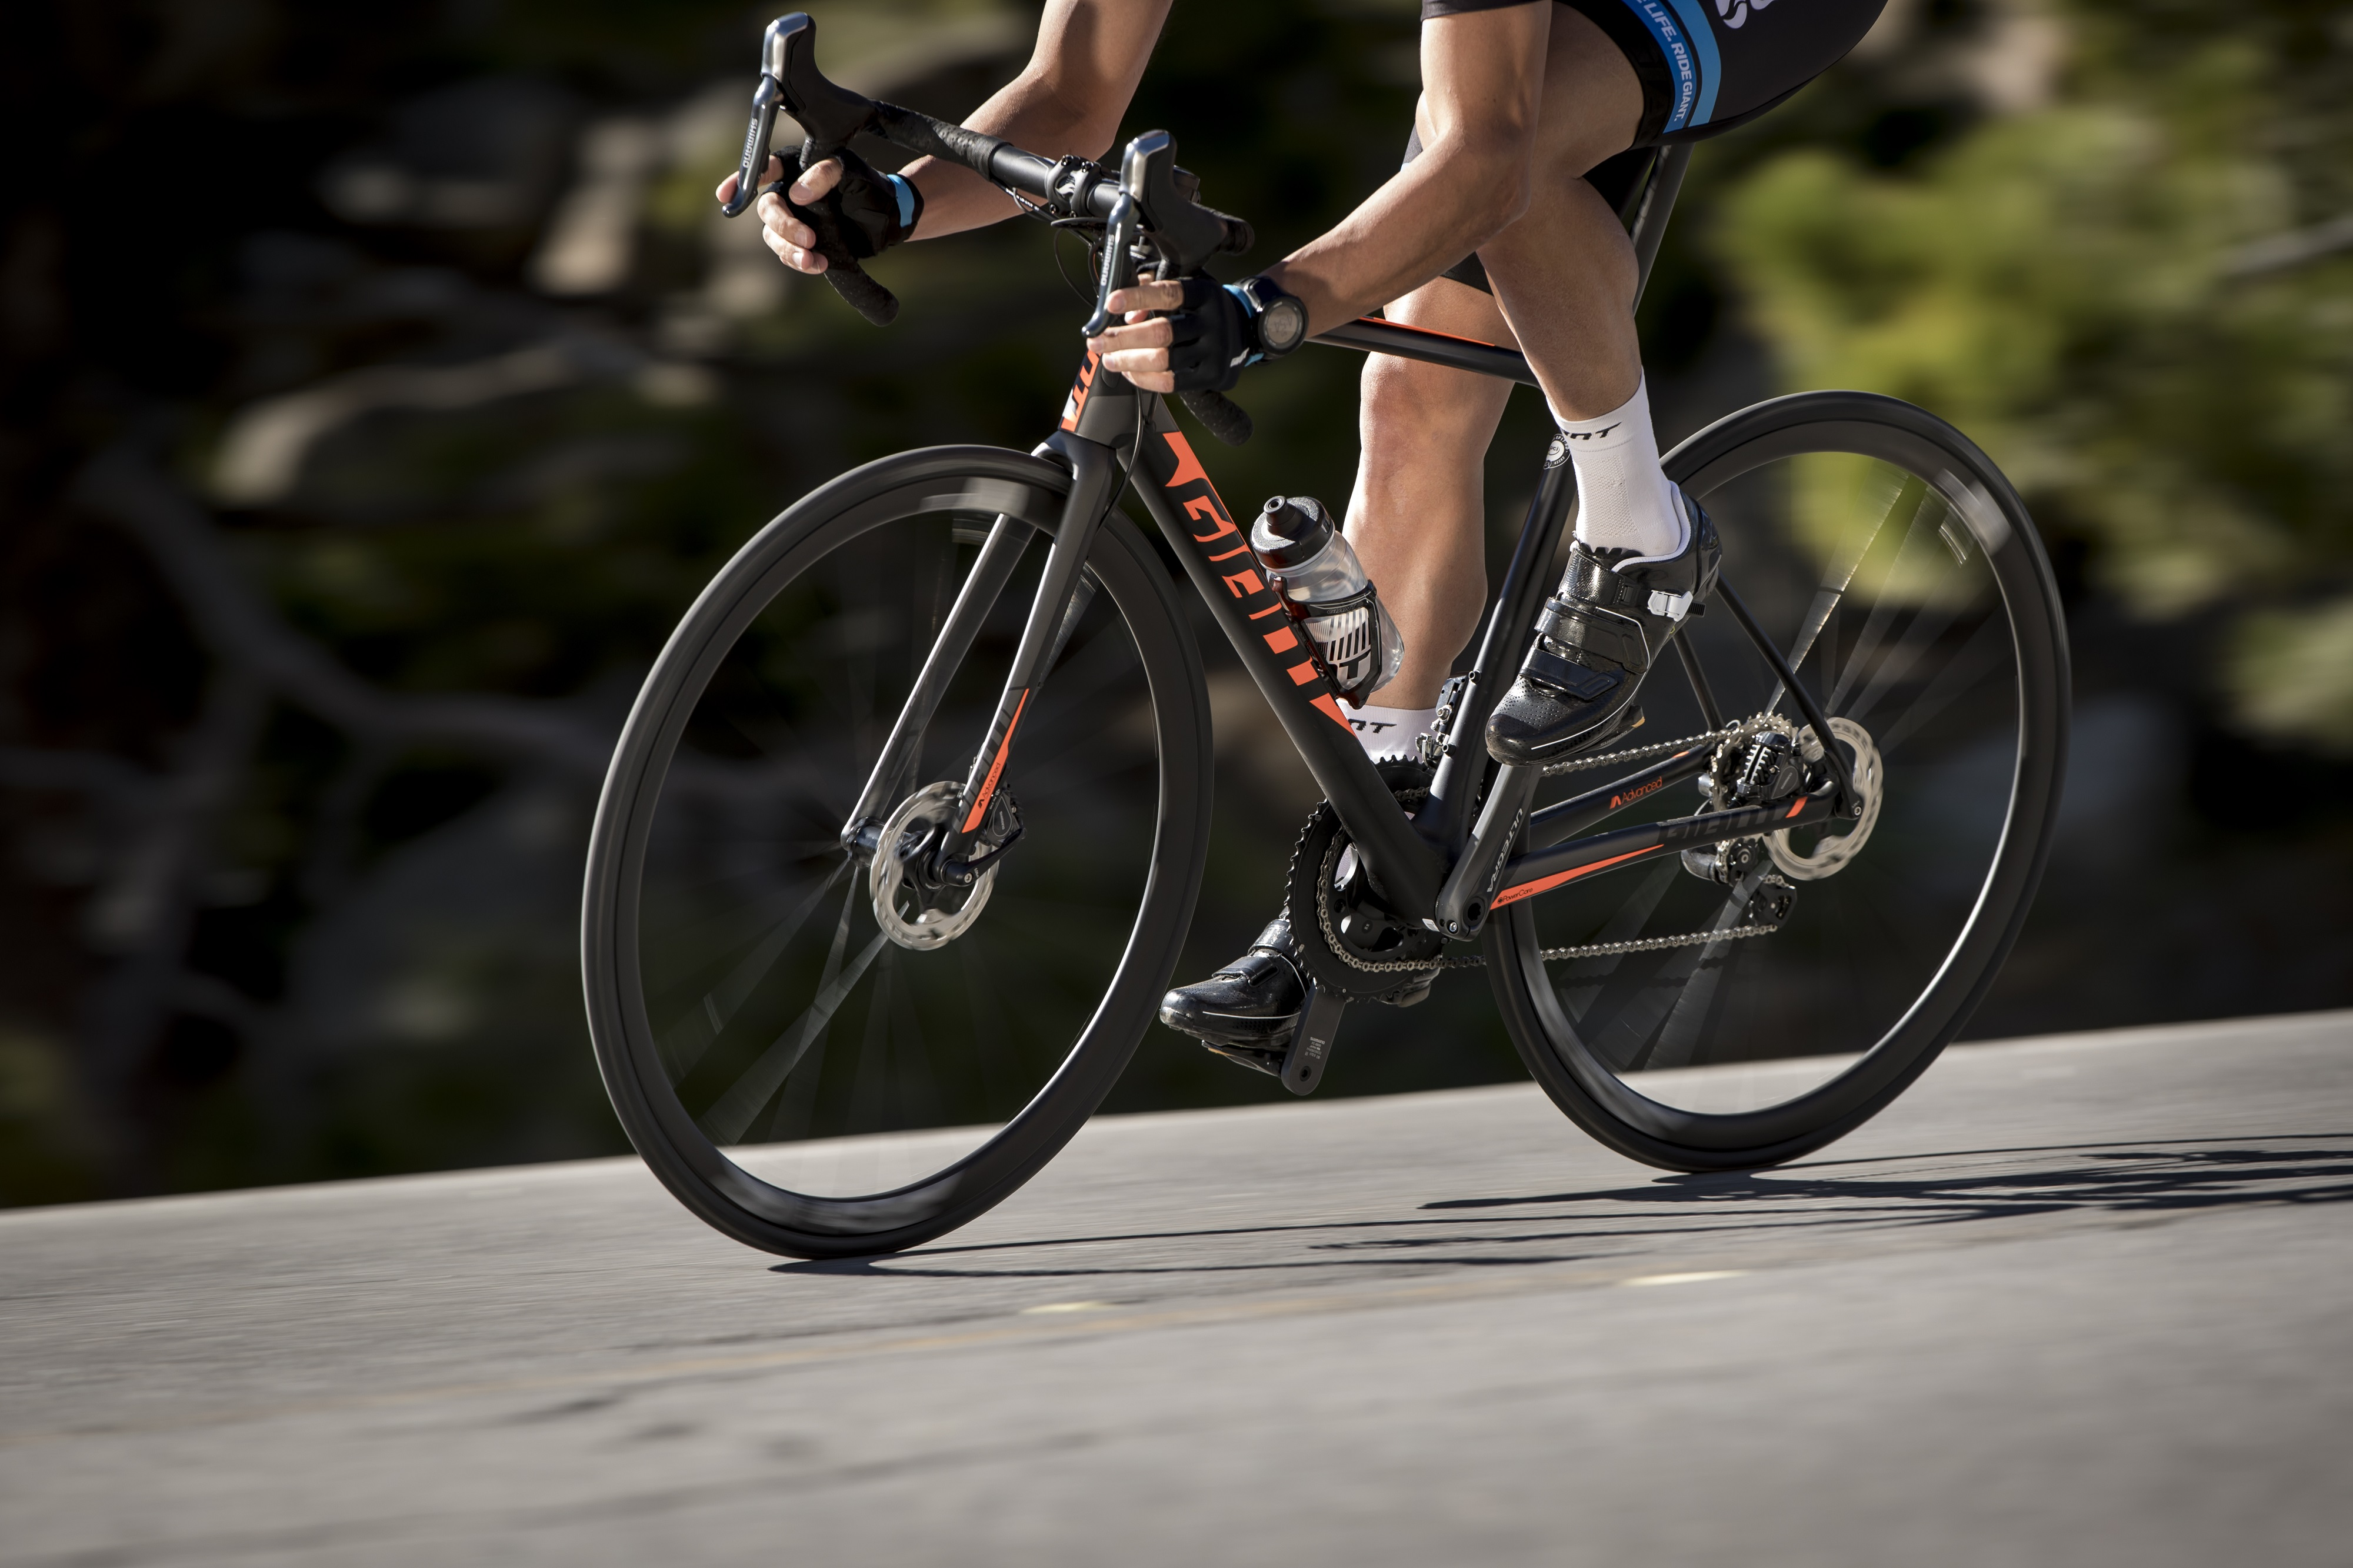 The TCR Disc range brings the added control of integrated disc-brake technology to the highly-regarded TCR race bike.